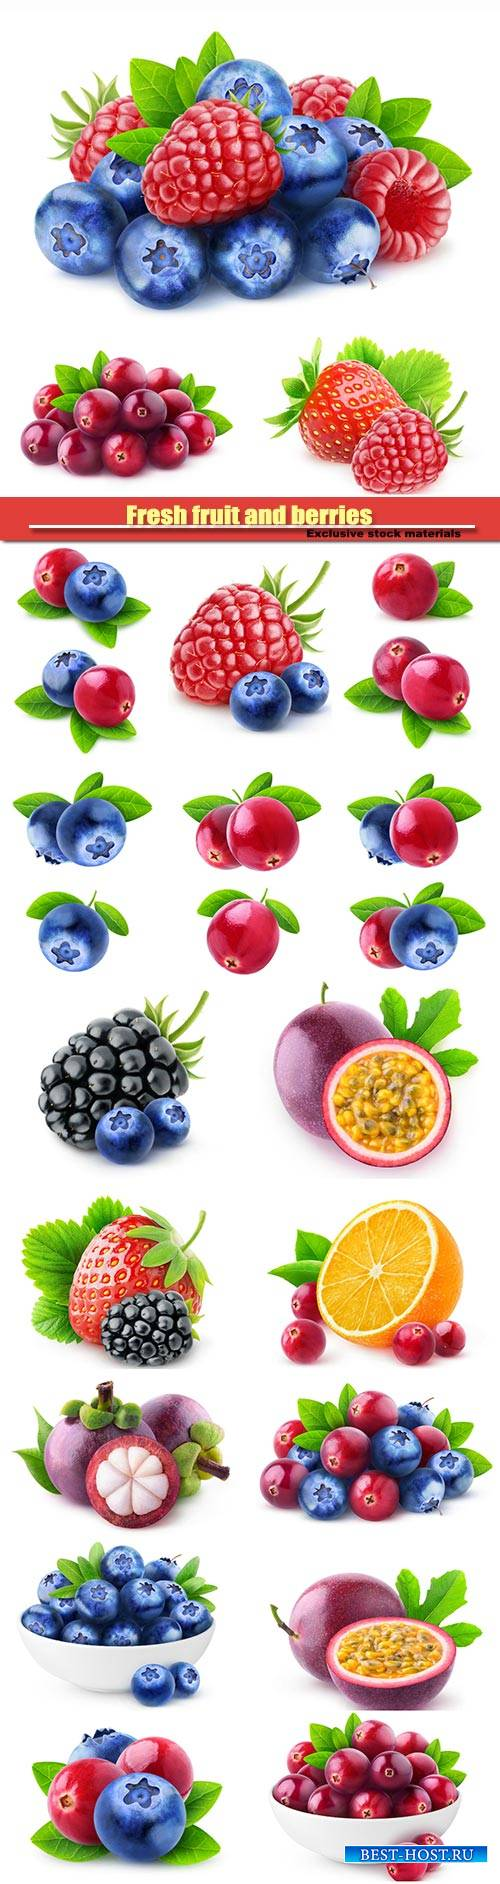 Fresh fruit and berries, blueberries and raspberries